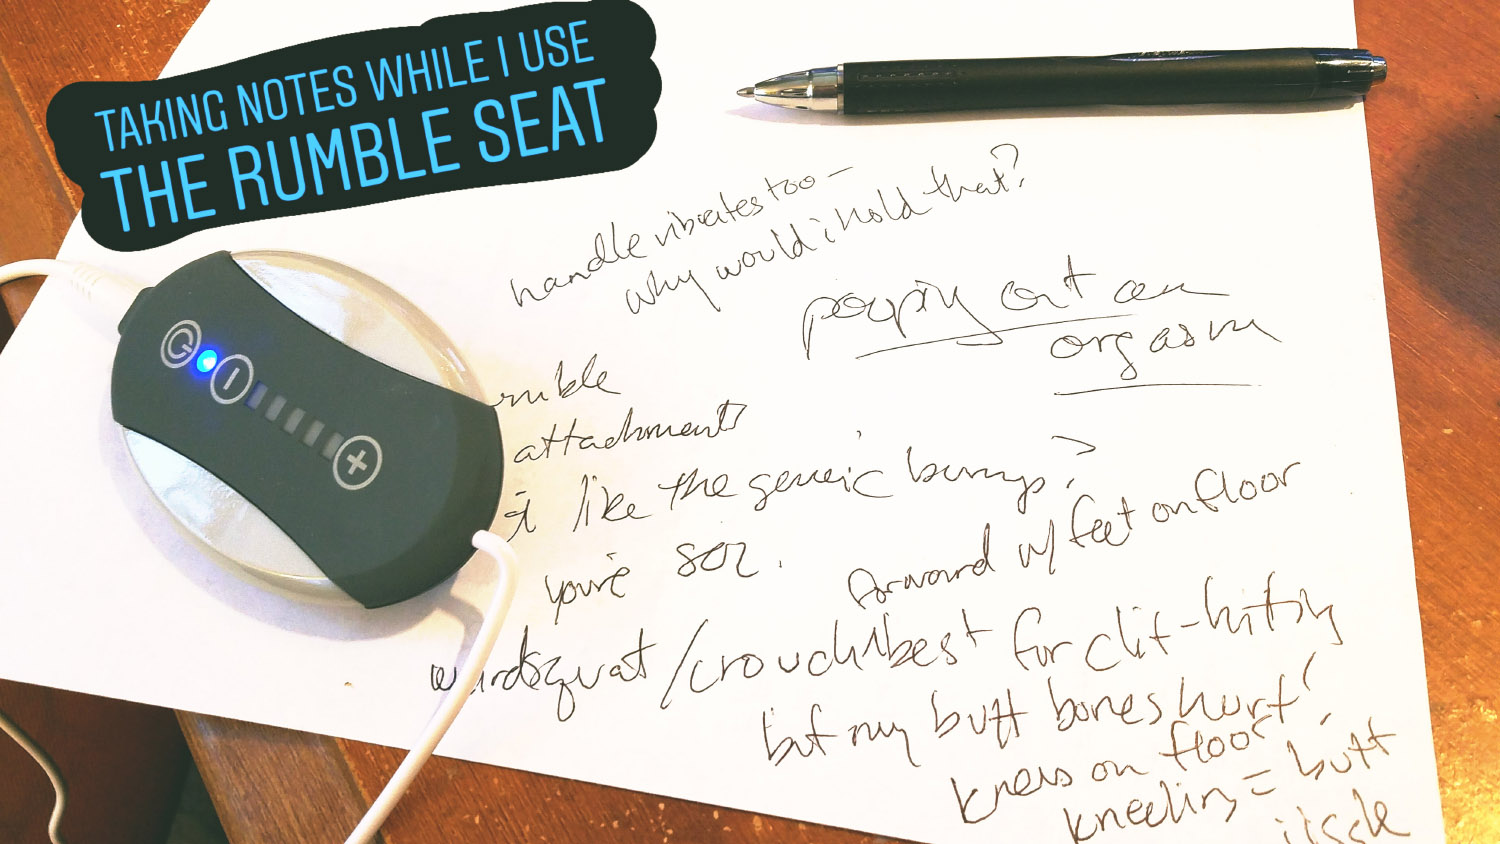 Messy notes taken while trying the Jimmyjane Rumble Seat.